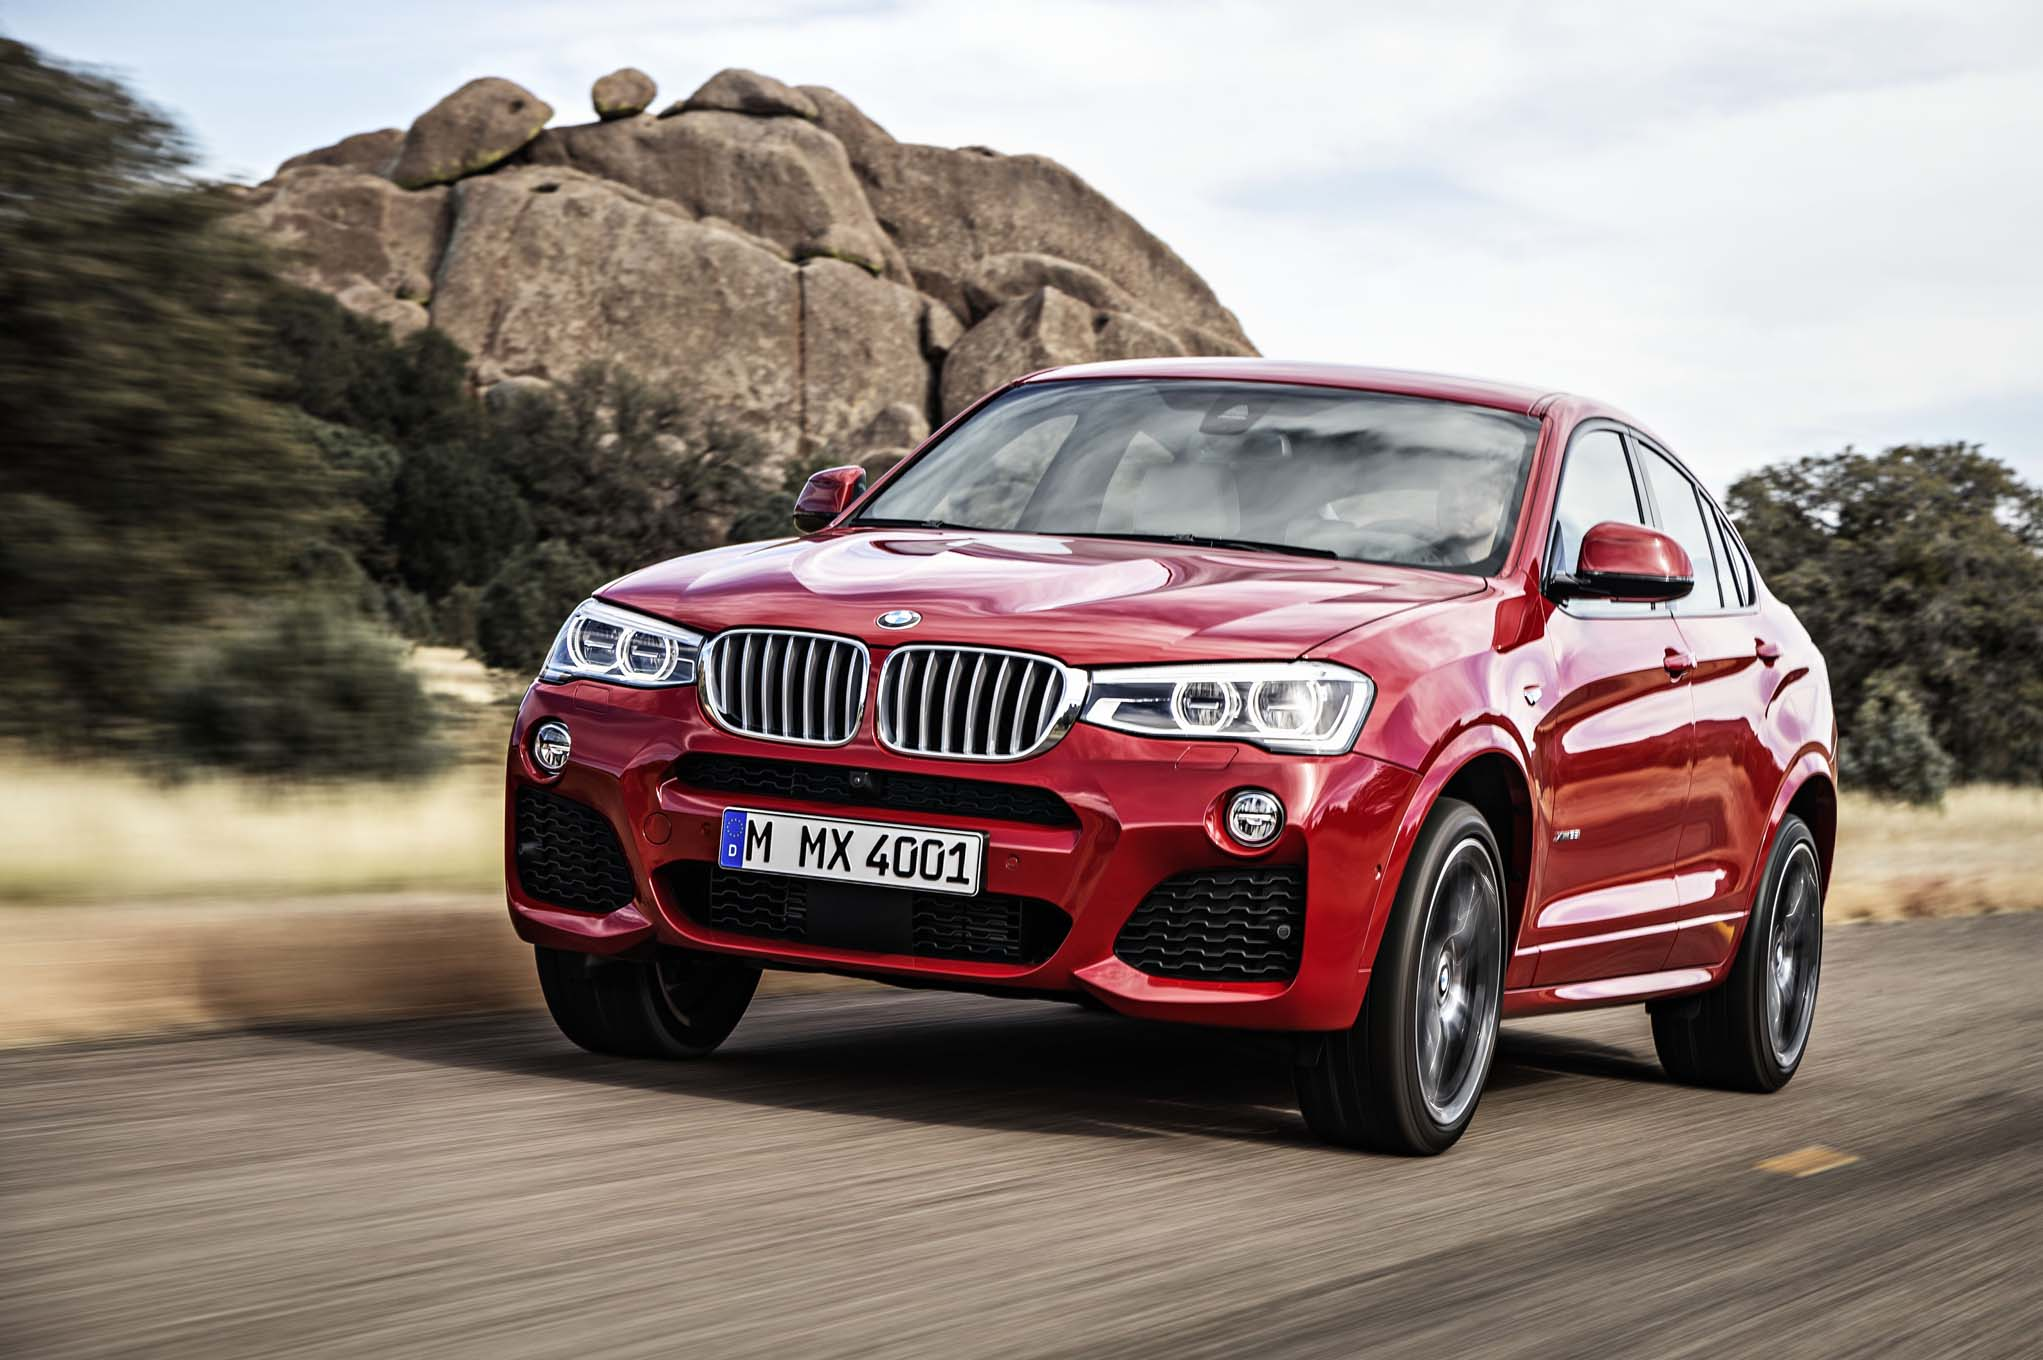 2015 Bmw X4 Exterior View (Photo 3 of 13)